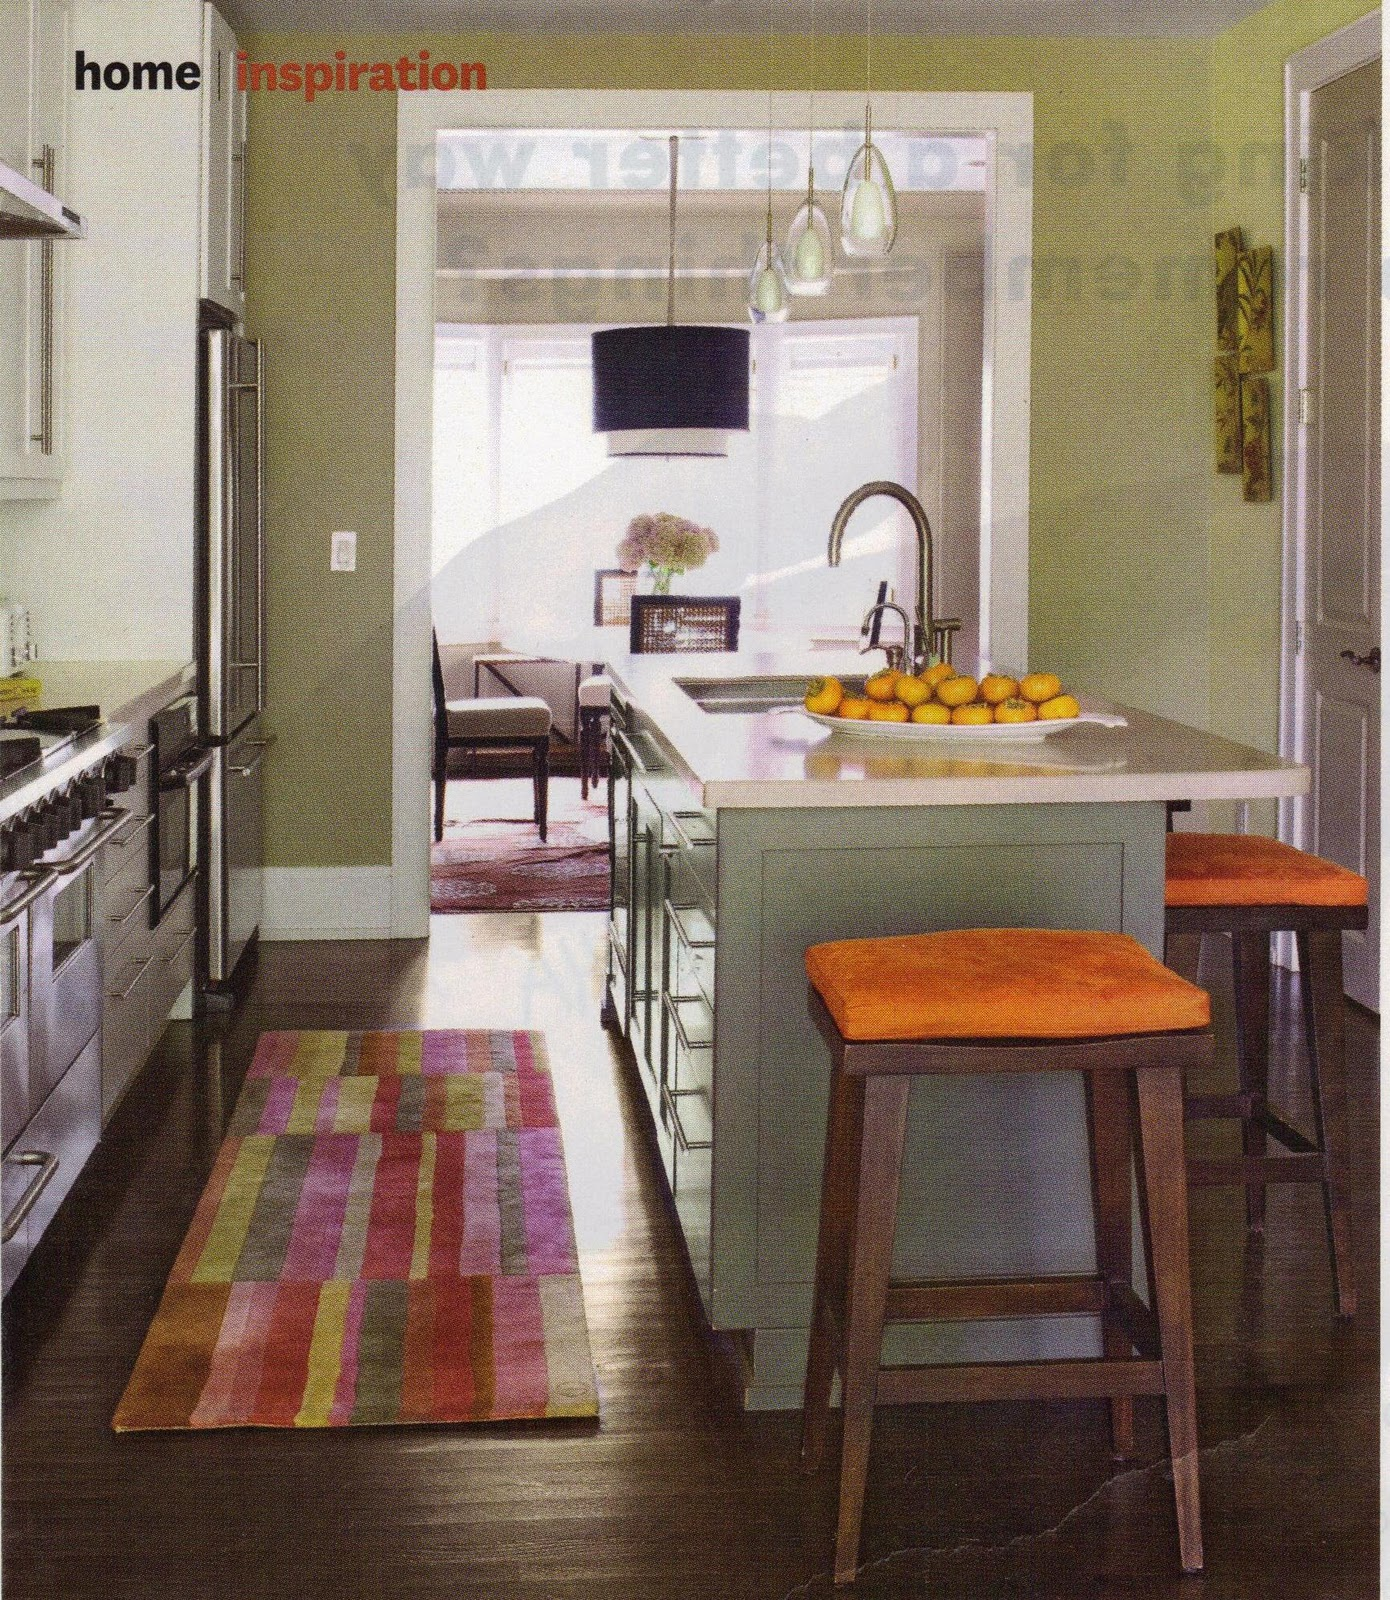 Rooster Area Rugs Kitchen Kitchen Rug Sets Kitchen Rug Sets 7 Piece Bristol Braided Rug Set